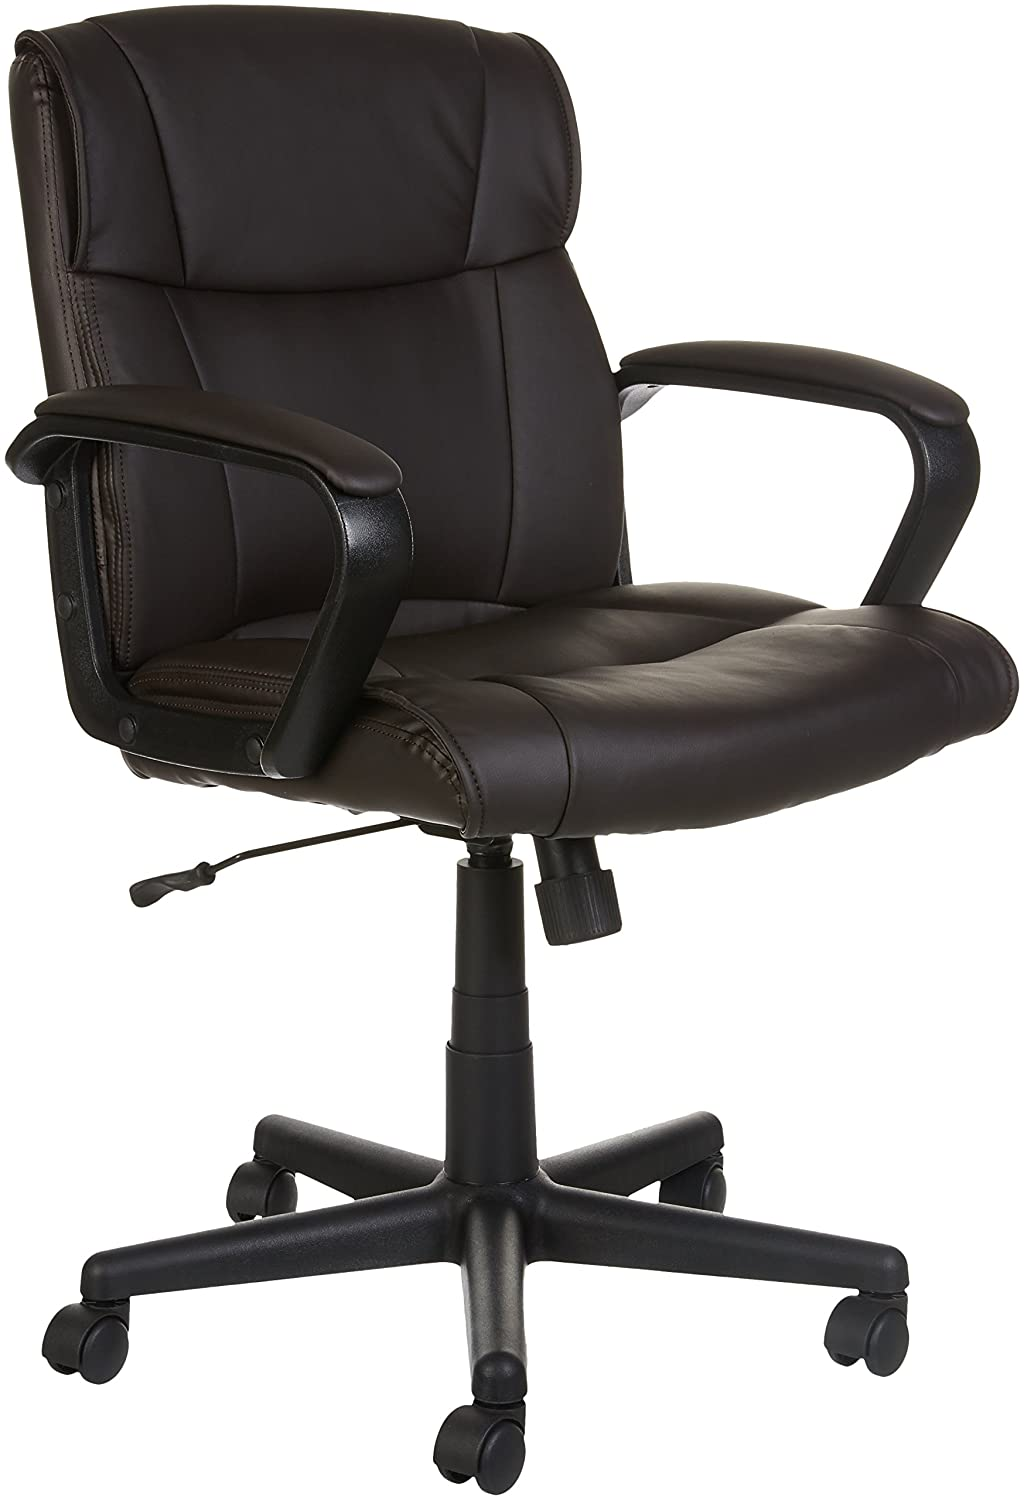 AmazonBasics Mid-Back Office Chair, Brown GF-9390M-1